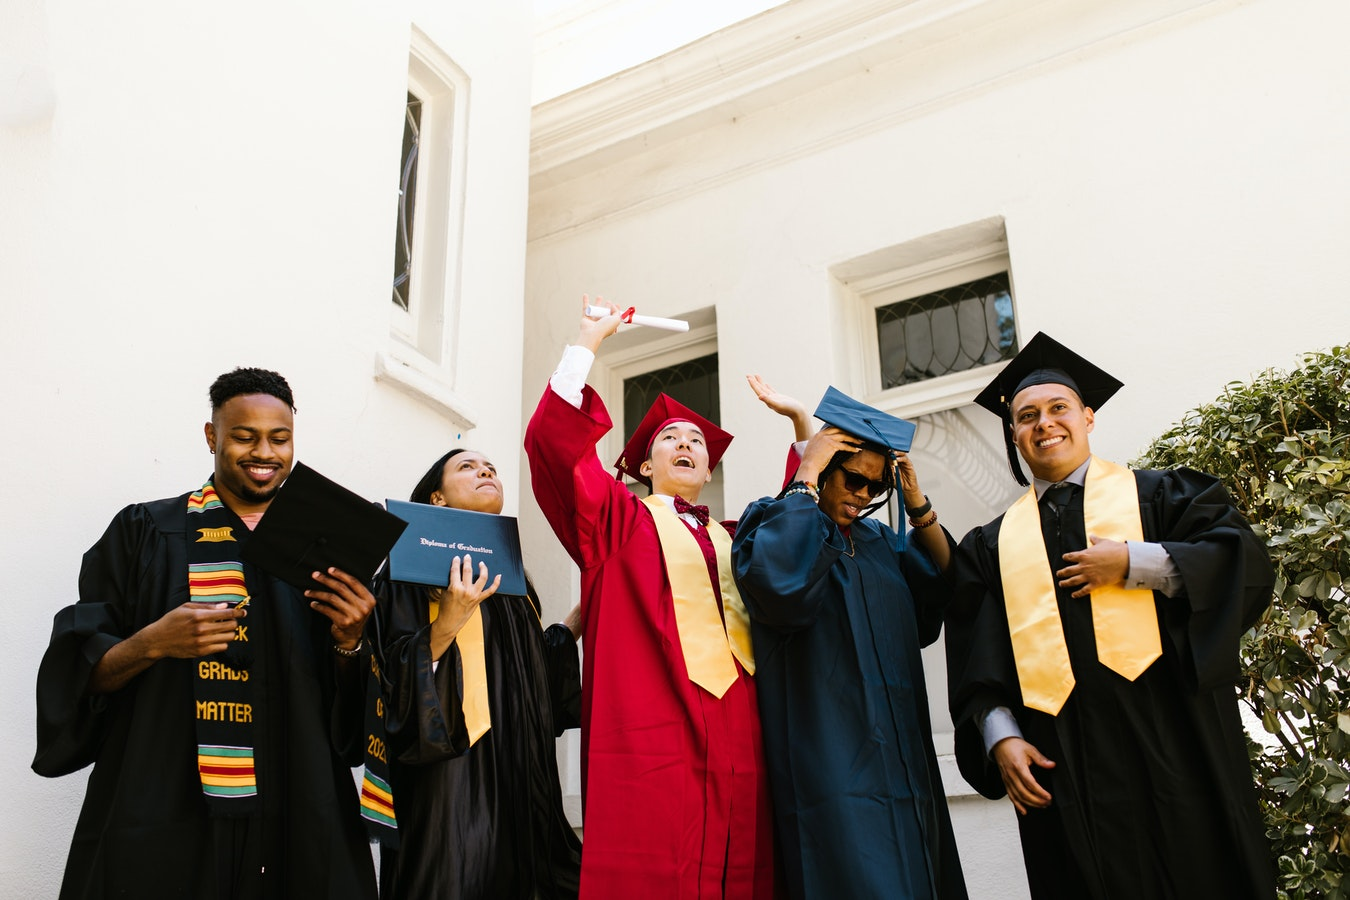 90% of black college graduates from PWIs make this cardinal mistake in their transition to Corporate America. Here's what it is and how to avoid making it.